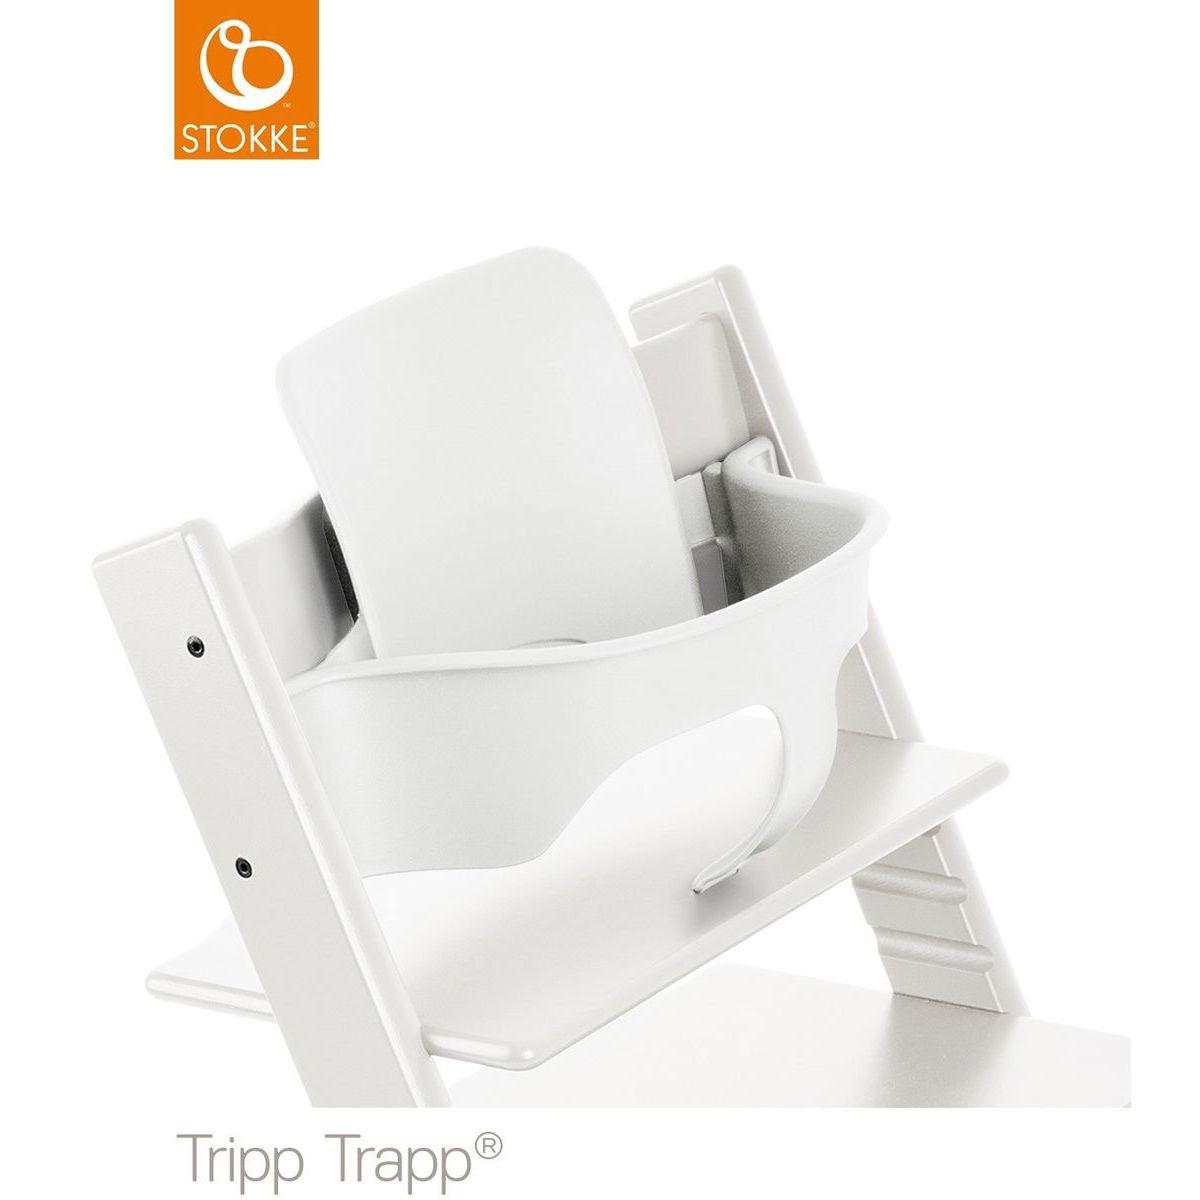 Baby set chaise haute TRIPP TRAPP Stokke blanc